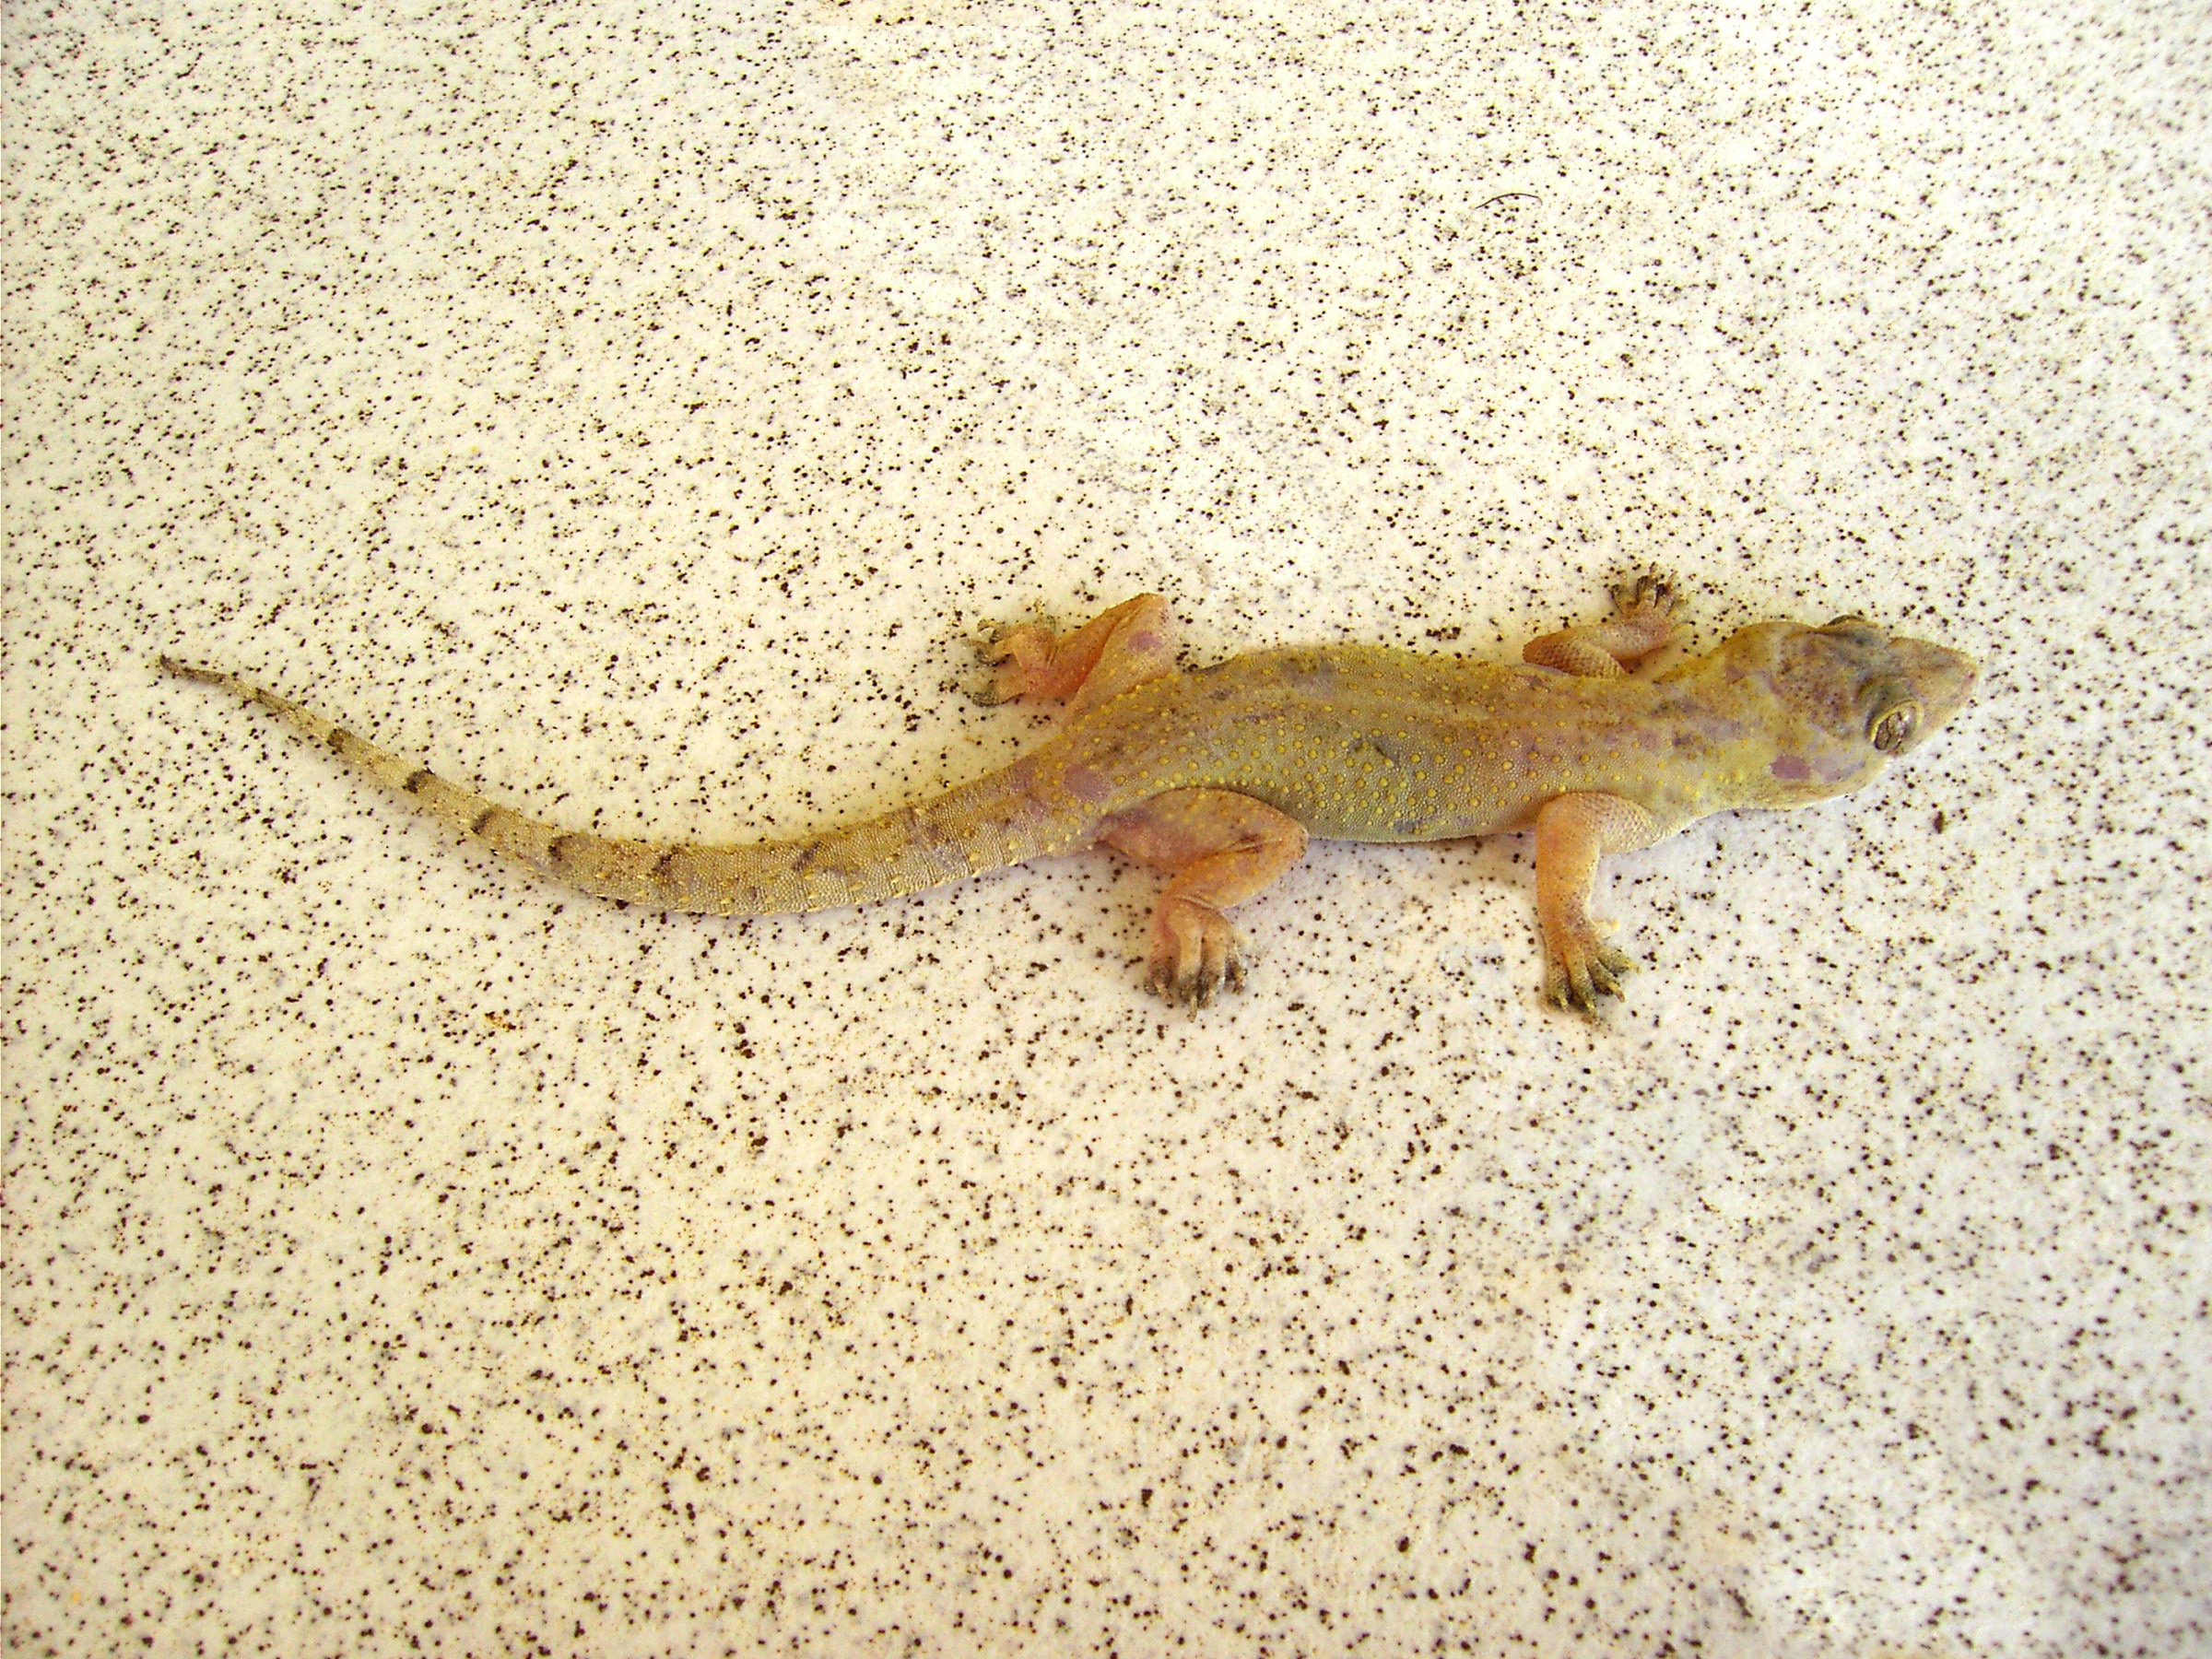 how to get rid of geckos inside house